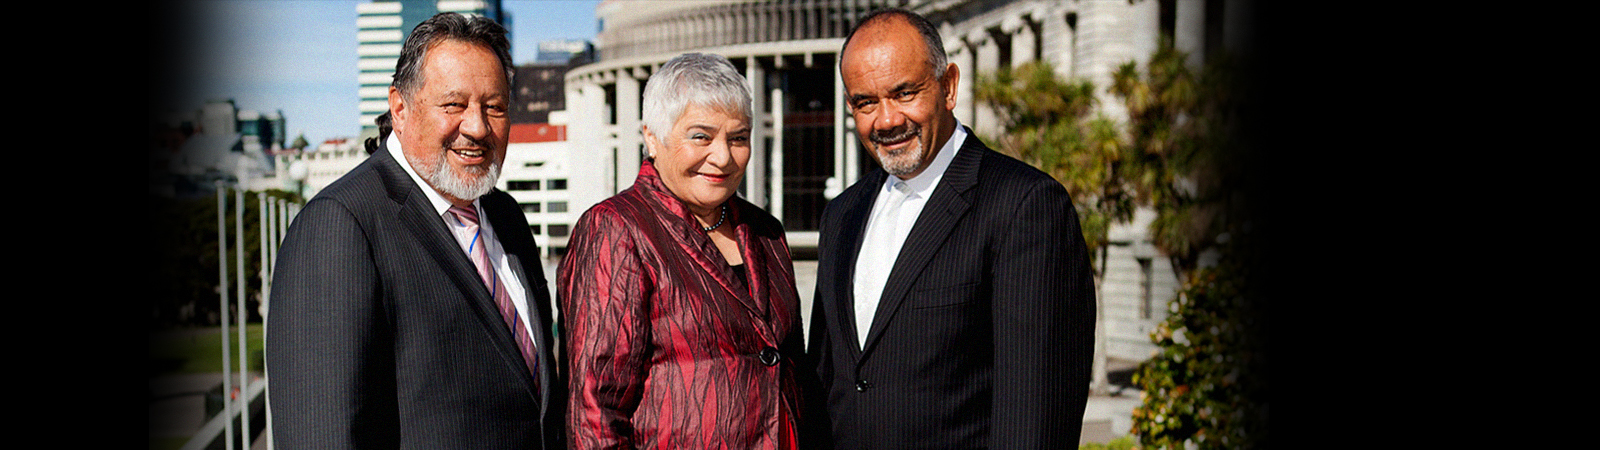 maori-party-mps[1]